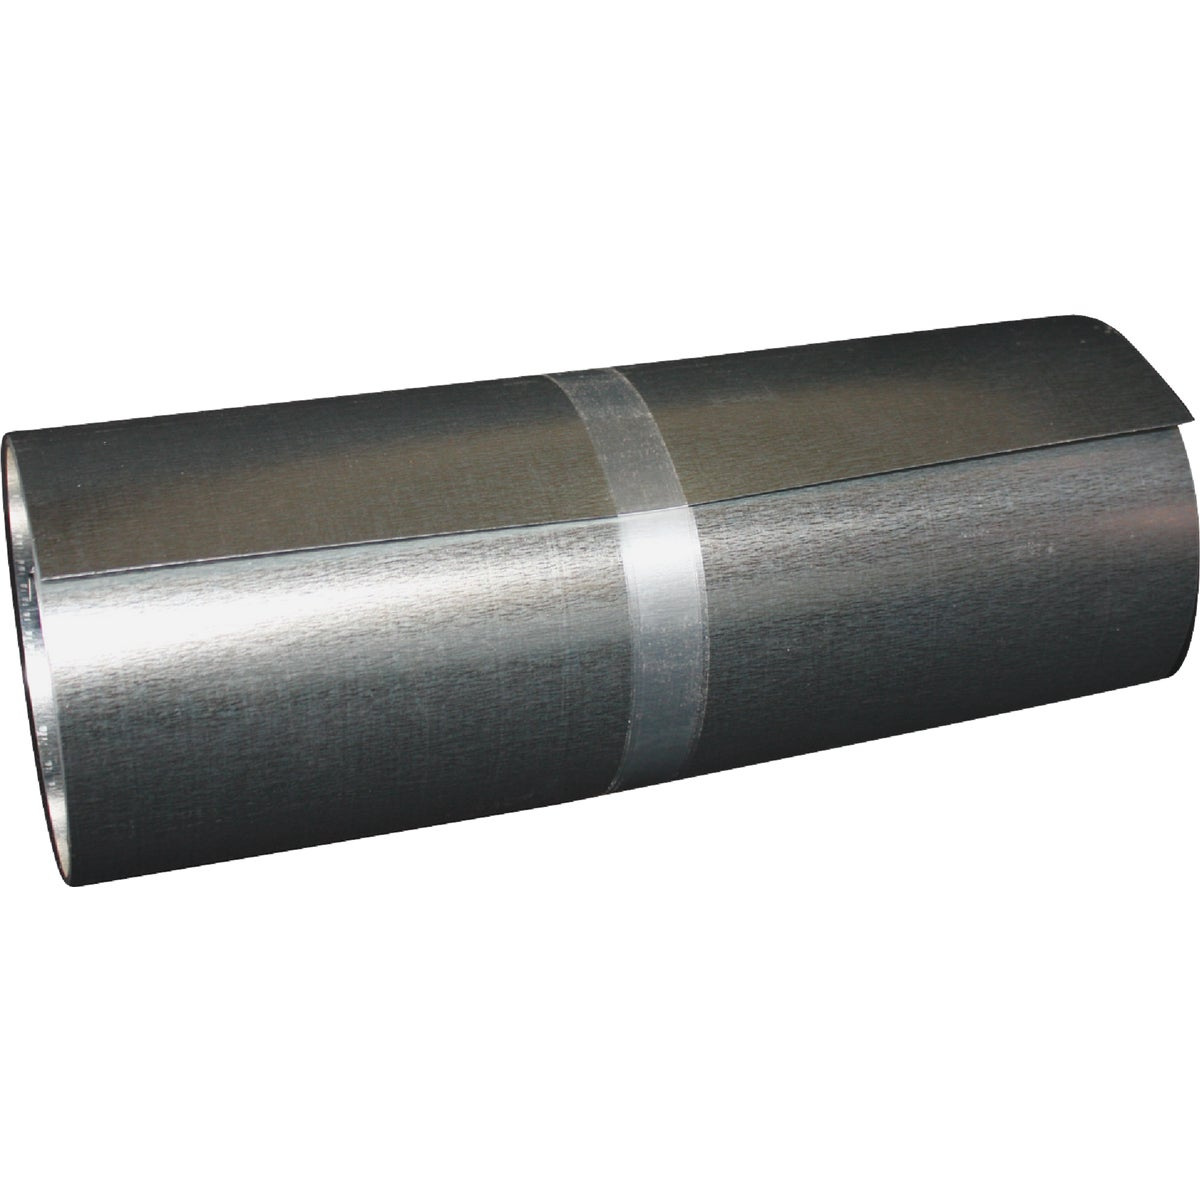 "6""X50' GALV ROLL VALLEY - 30010-GV10 by Klauer Mfg Co"